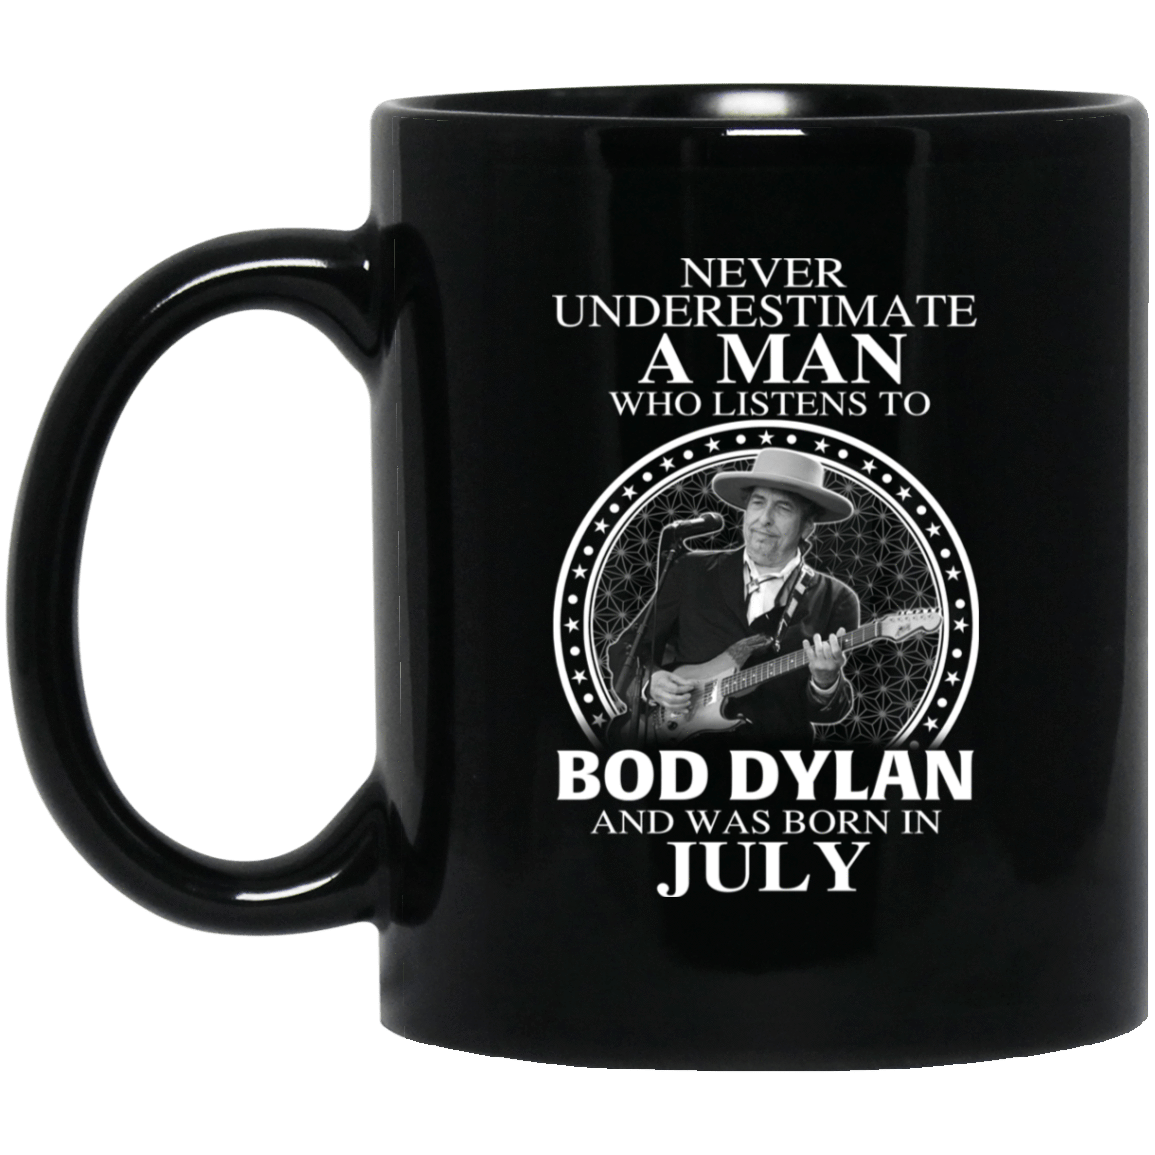 A Man Who Listens To Bob Dylan And Was Born In July Mug 1065-10181-76154695-49307 - Tee Ript